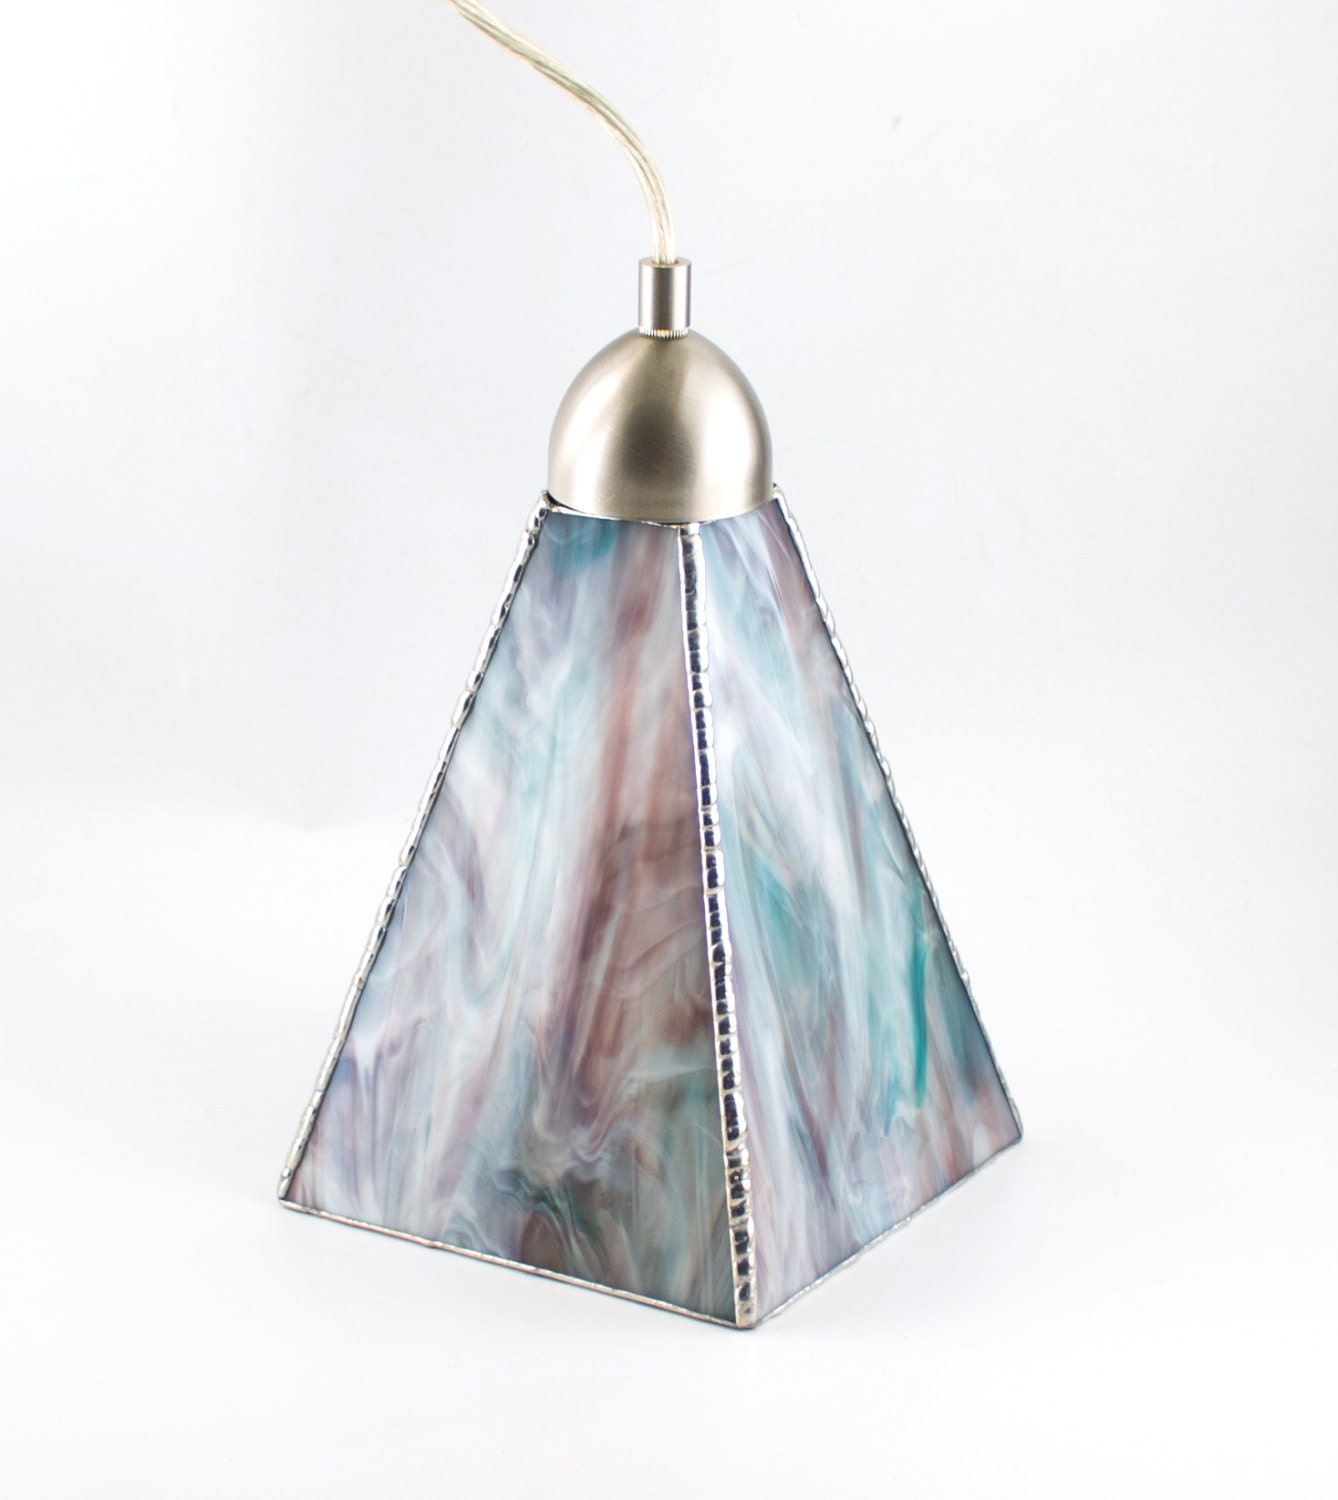 Stained Glass Pendant Lighting Ceiling Fixture Glass Shade